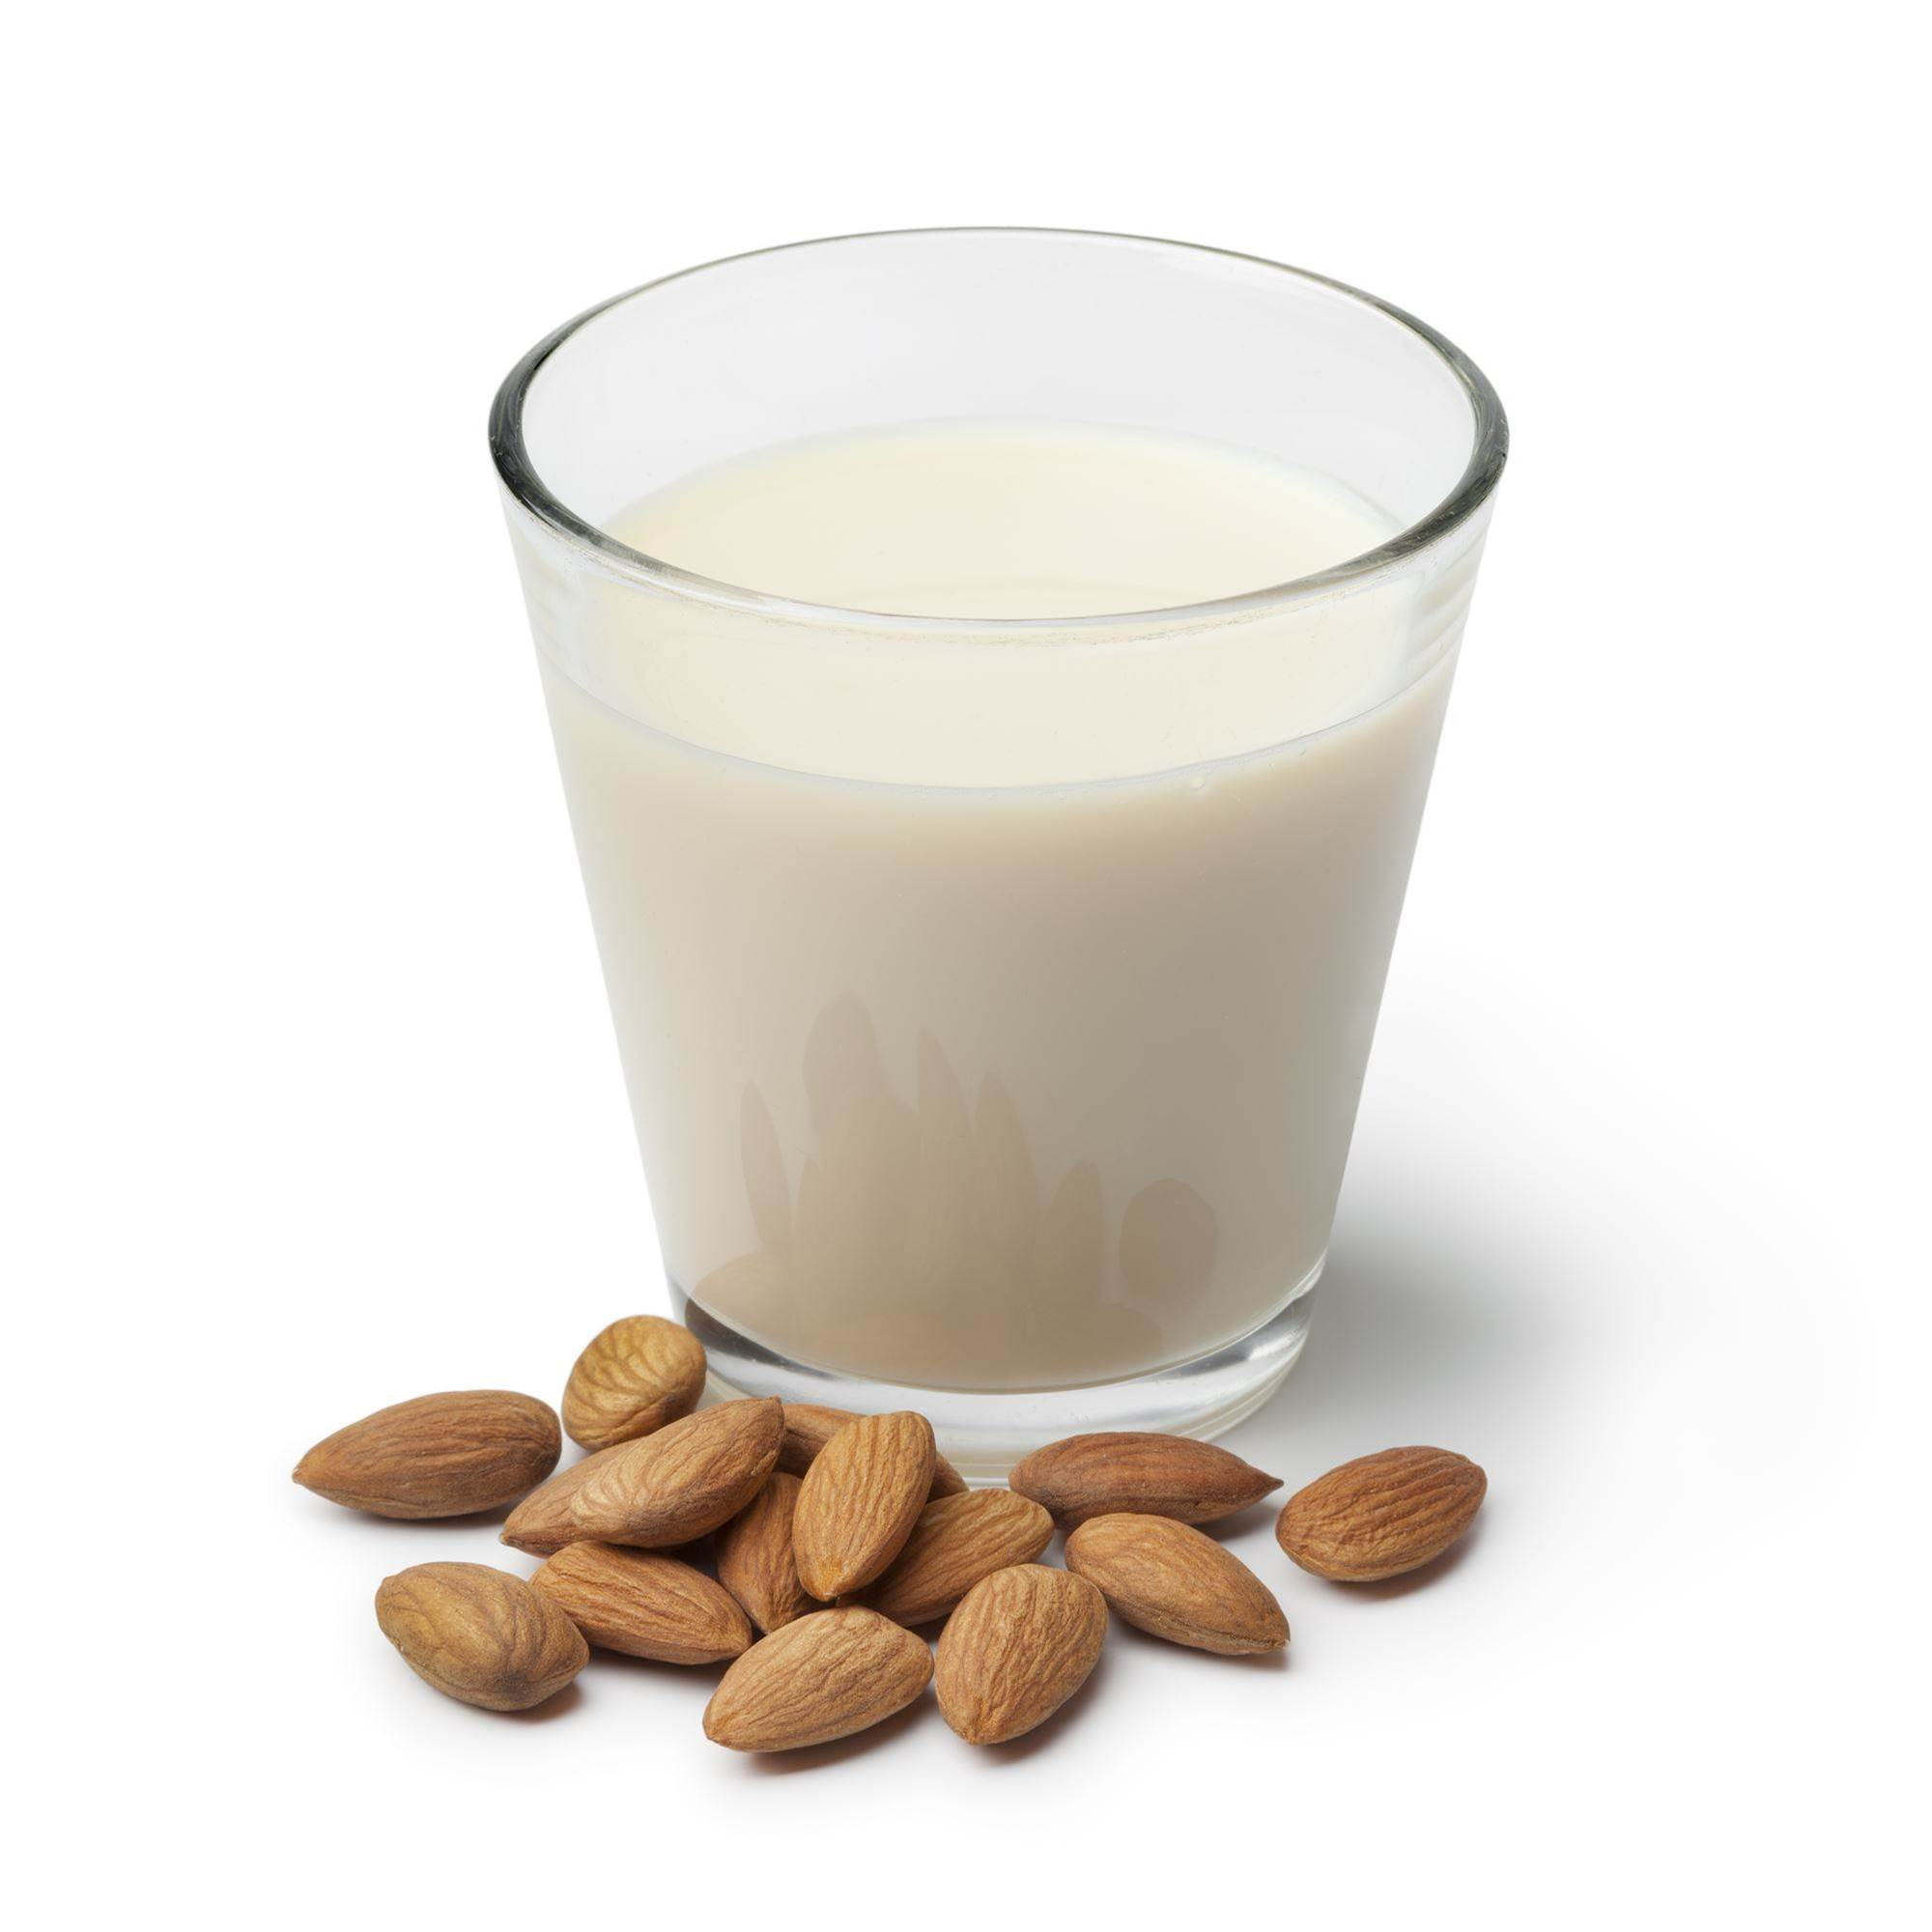 I Swapped My Almond Milk With Full-Fat Dairy For A Month—Here's What Happened